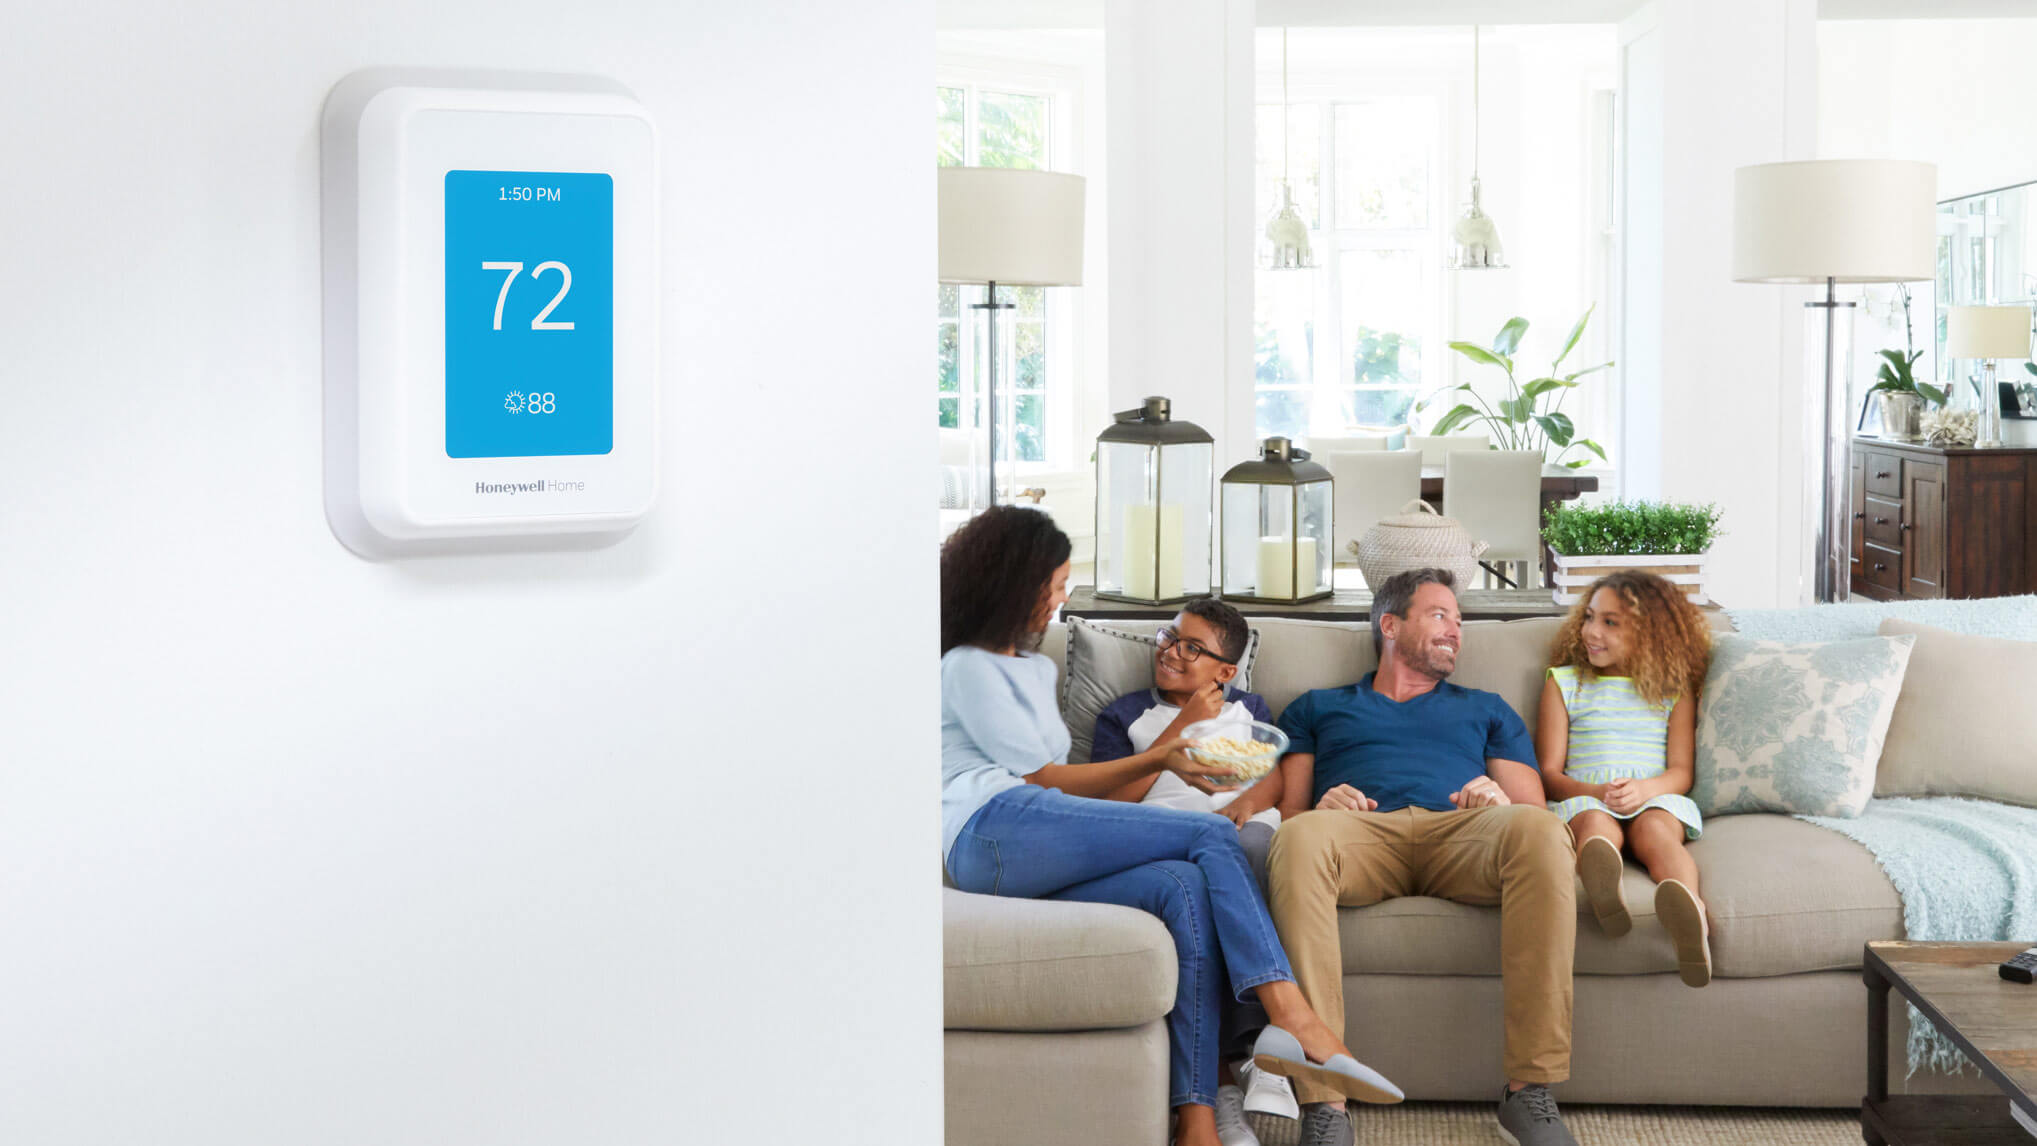 Learn more about how home indoor air quality impacts customers